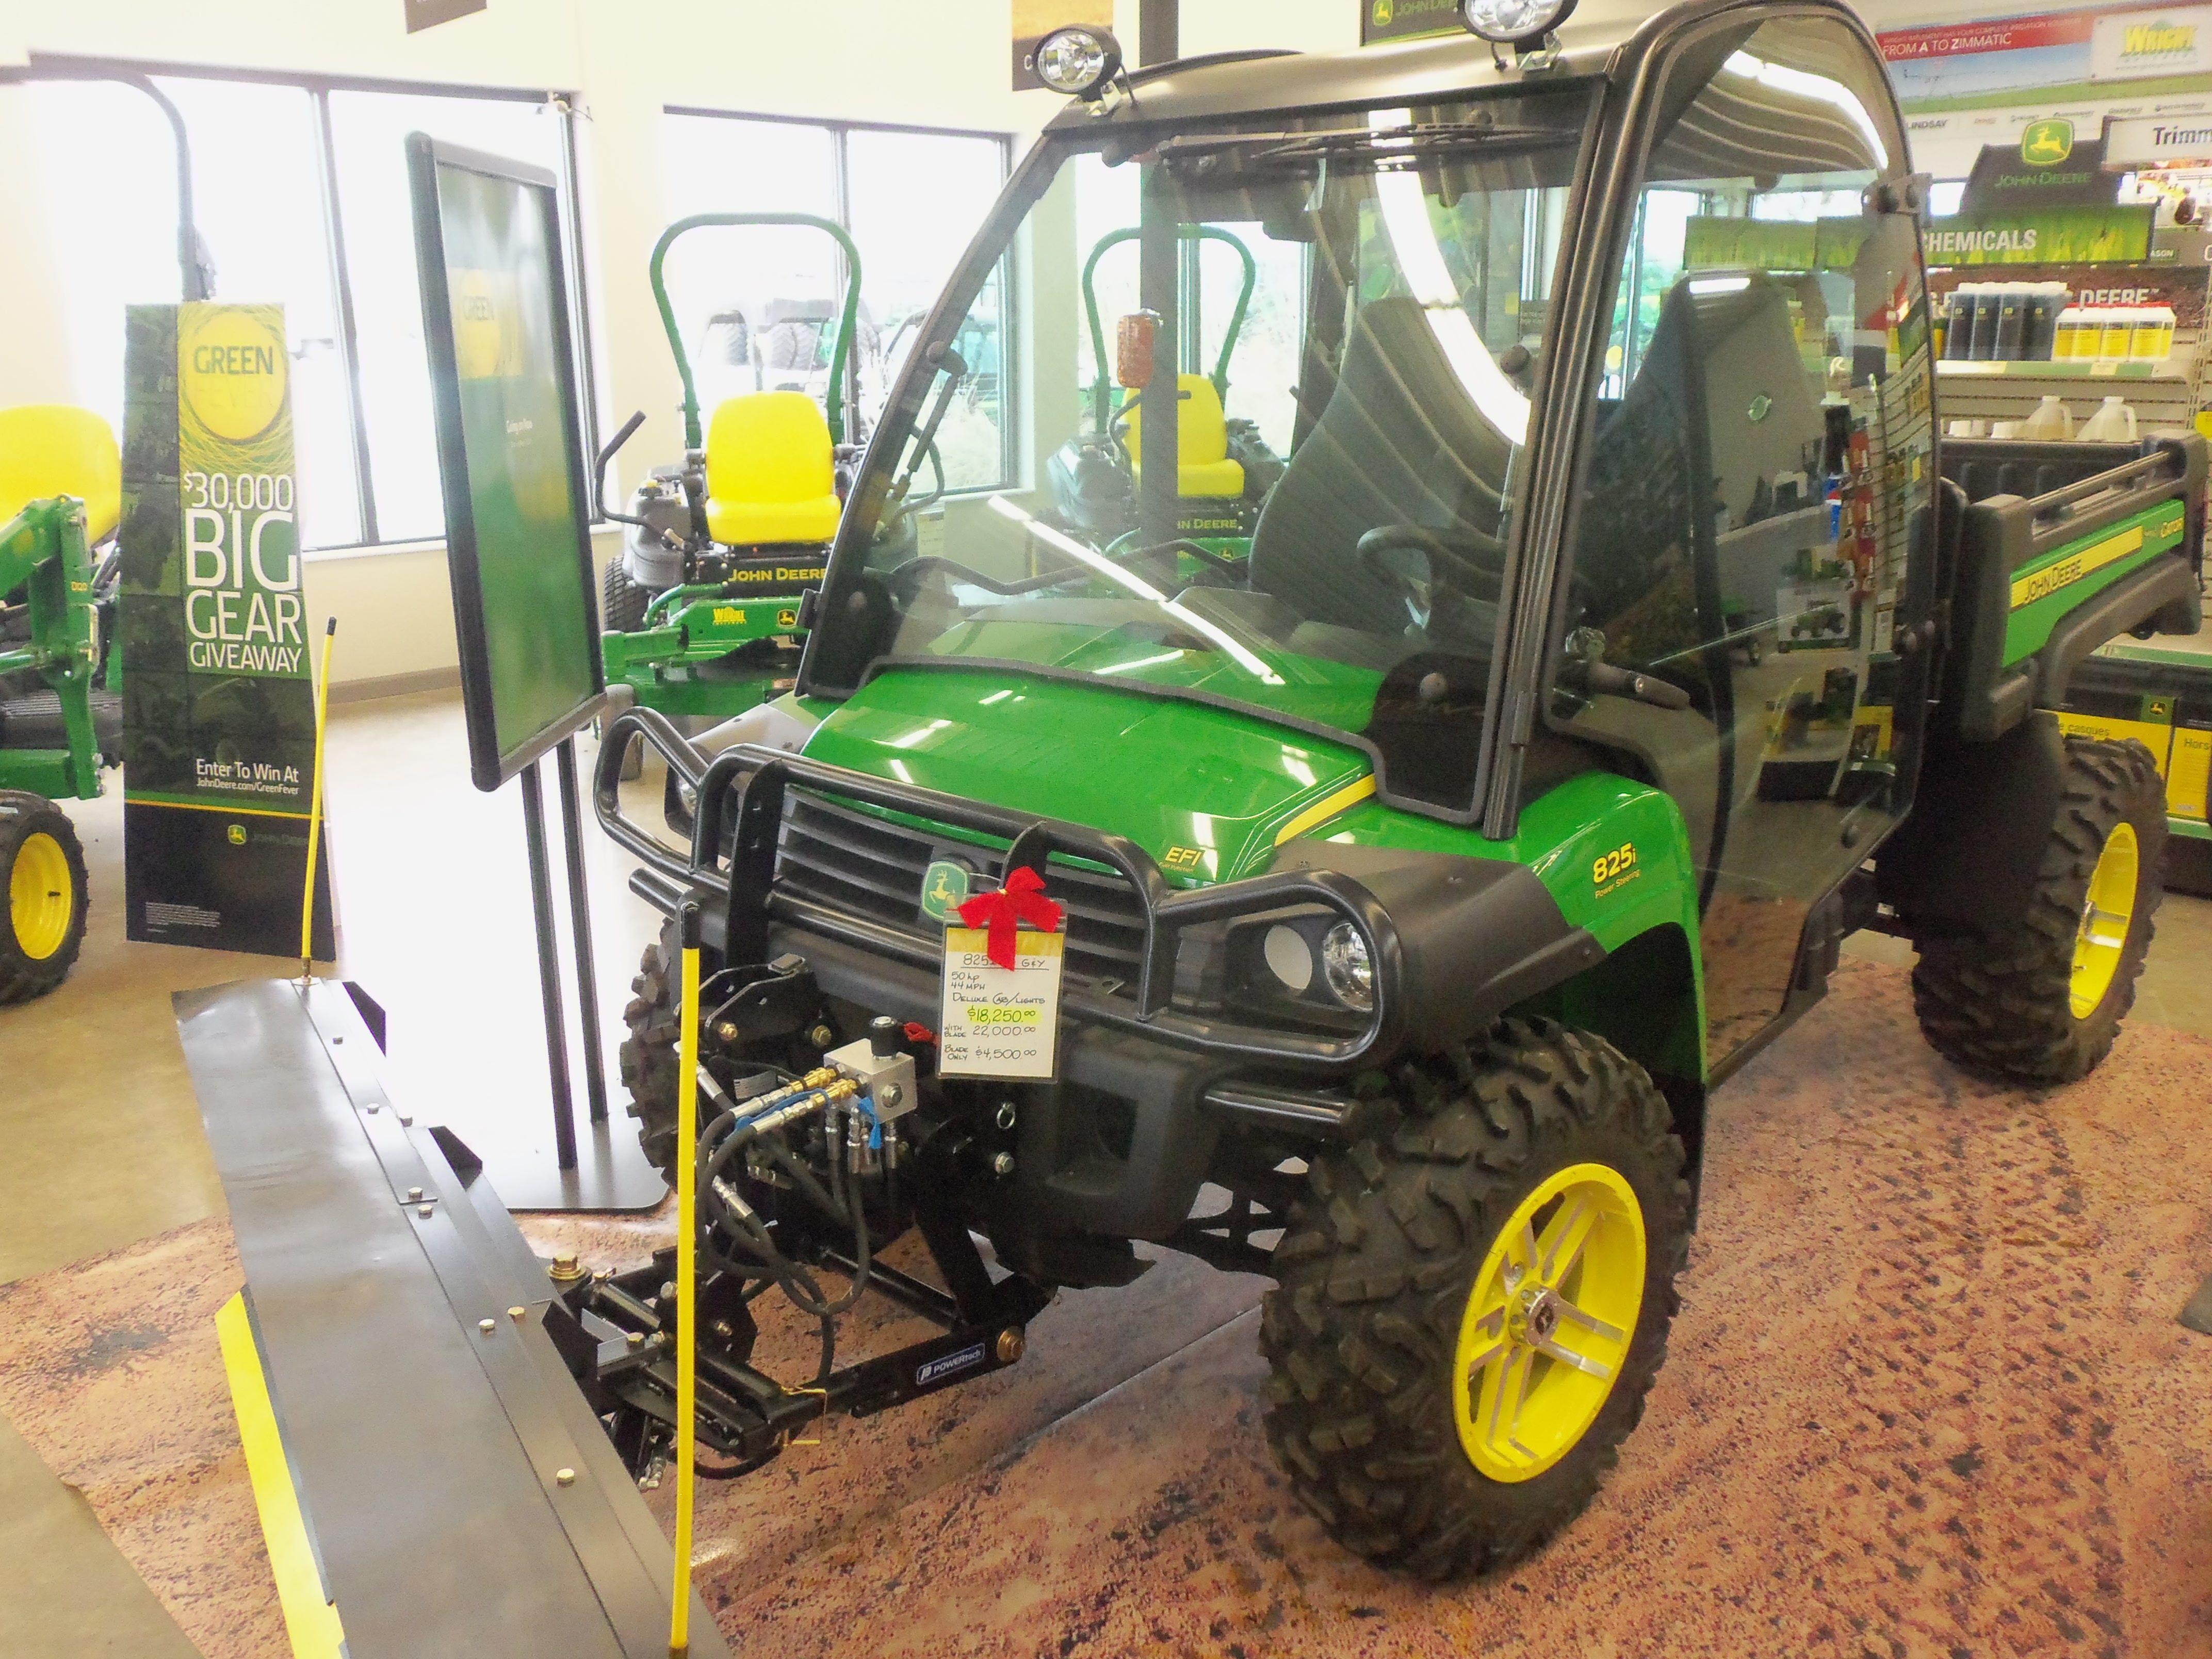 hight resolution of john deere gator 825i with cab john deere equipment tractors pro p auto meter tach wiring diagram likewise kubota tractor steering